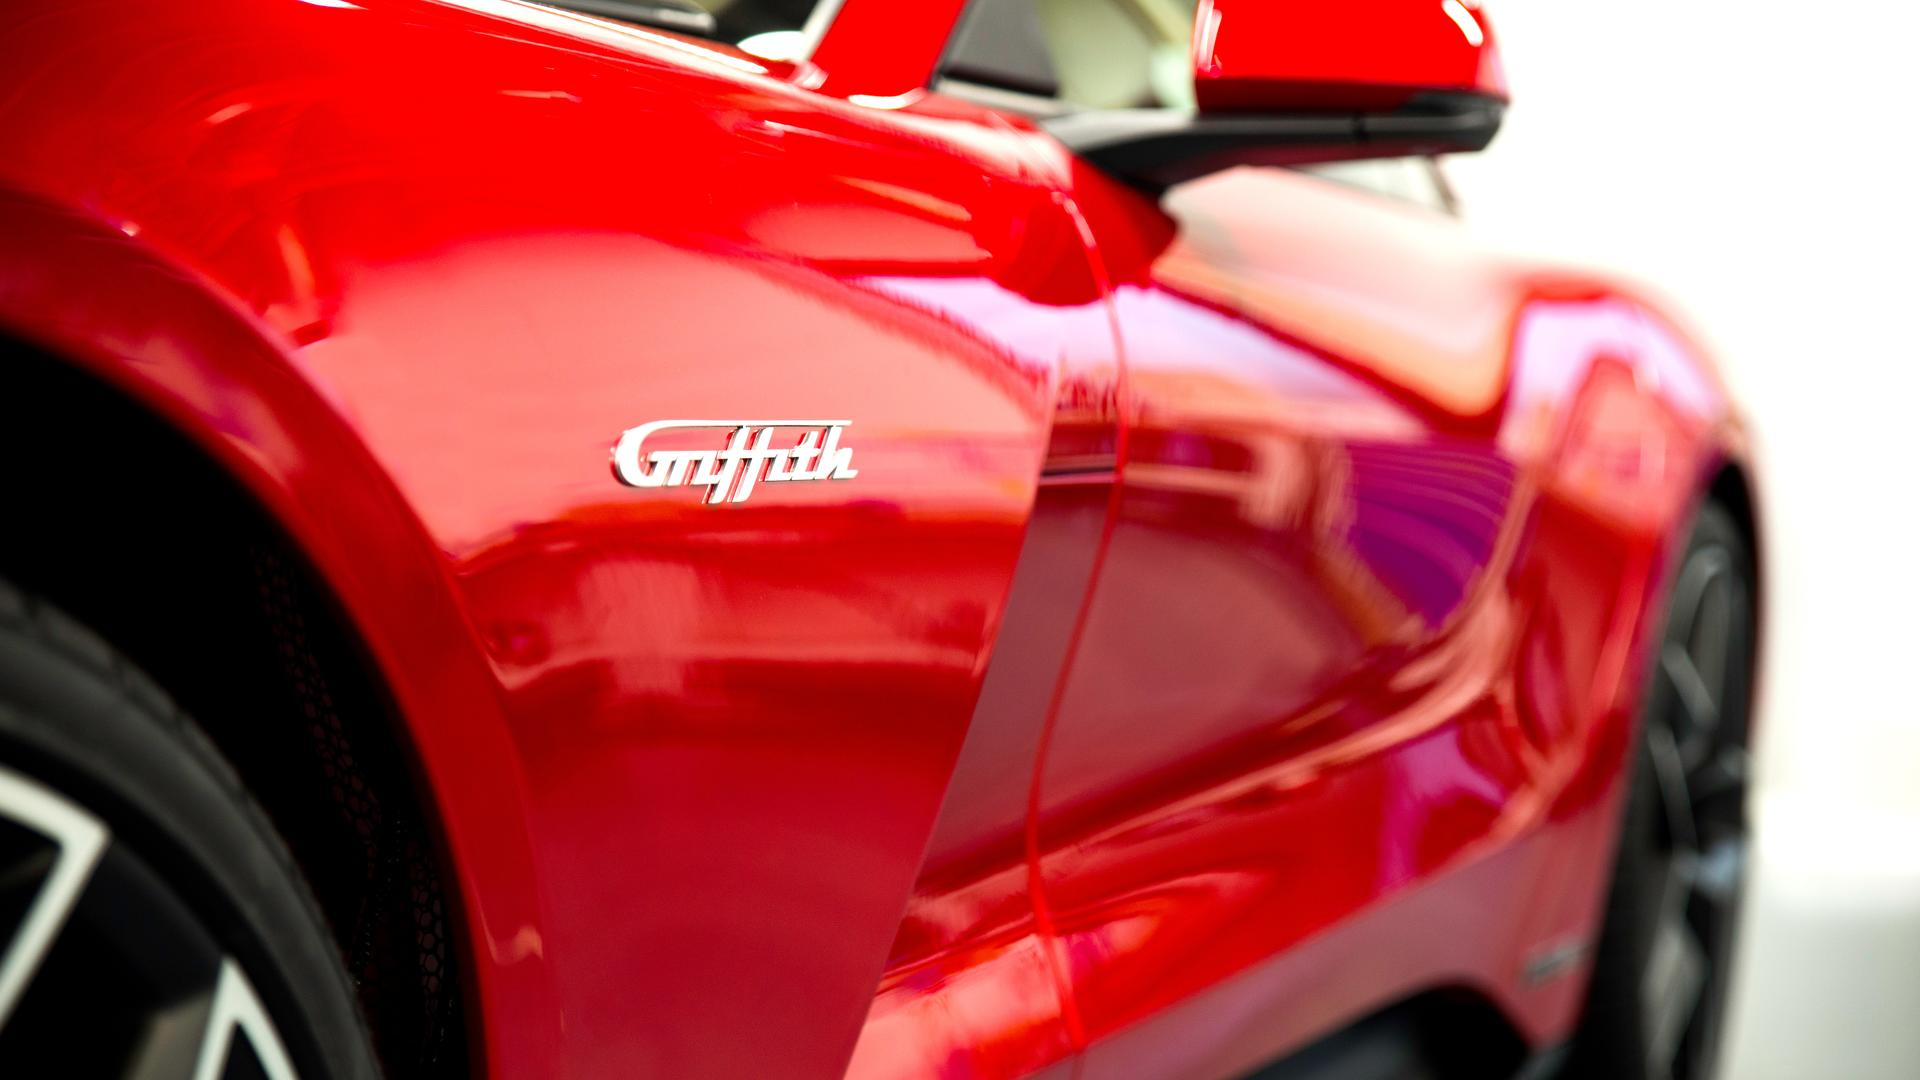 2018-tvr-griffith (11)